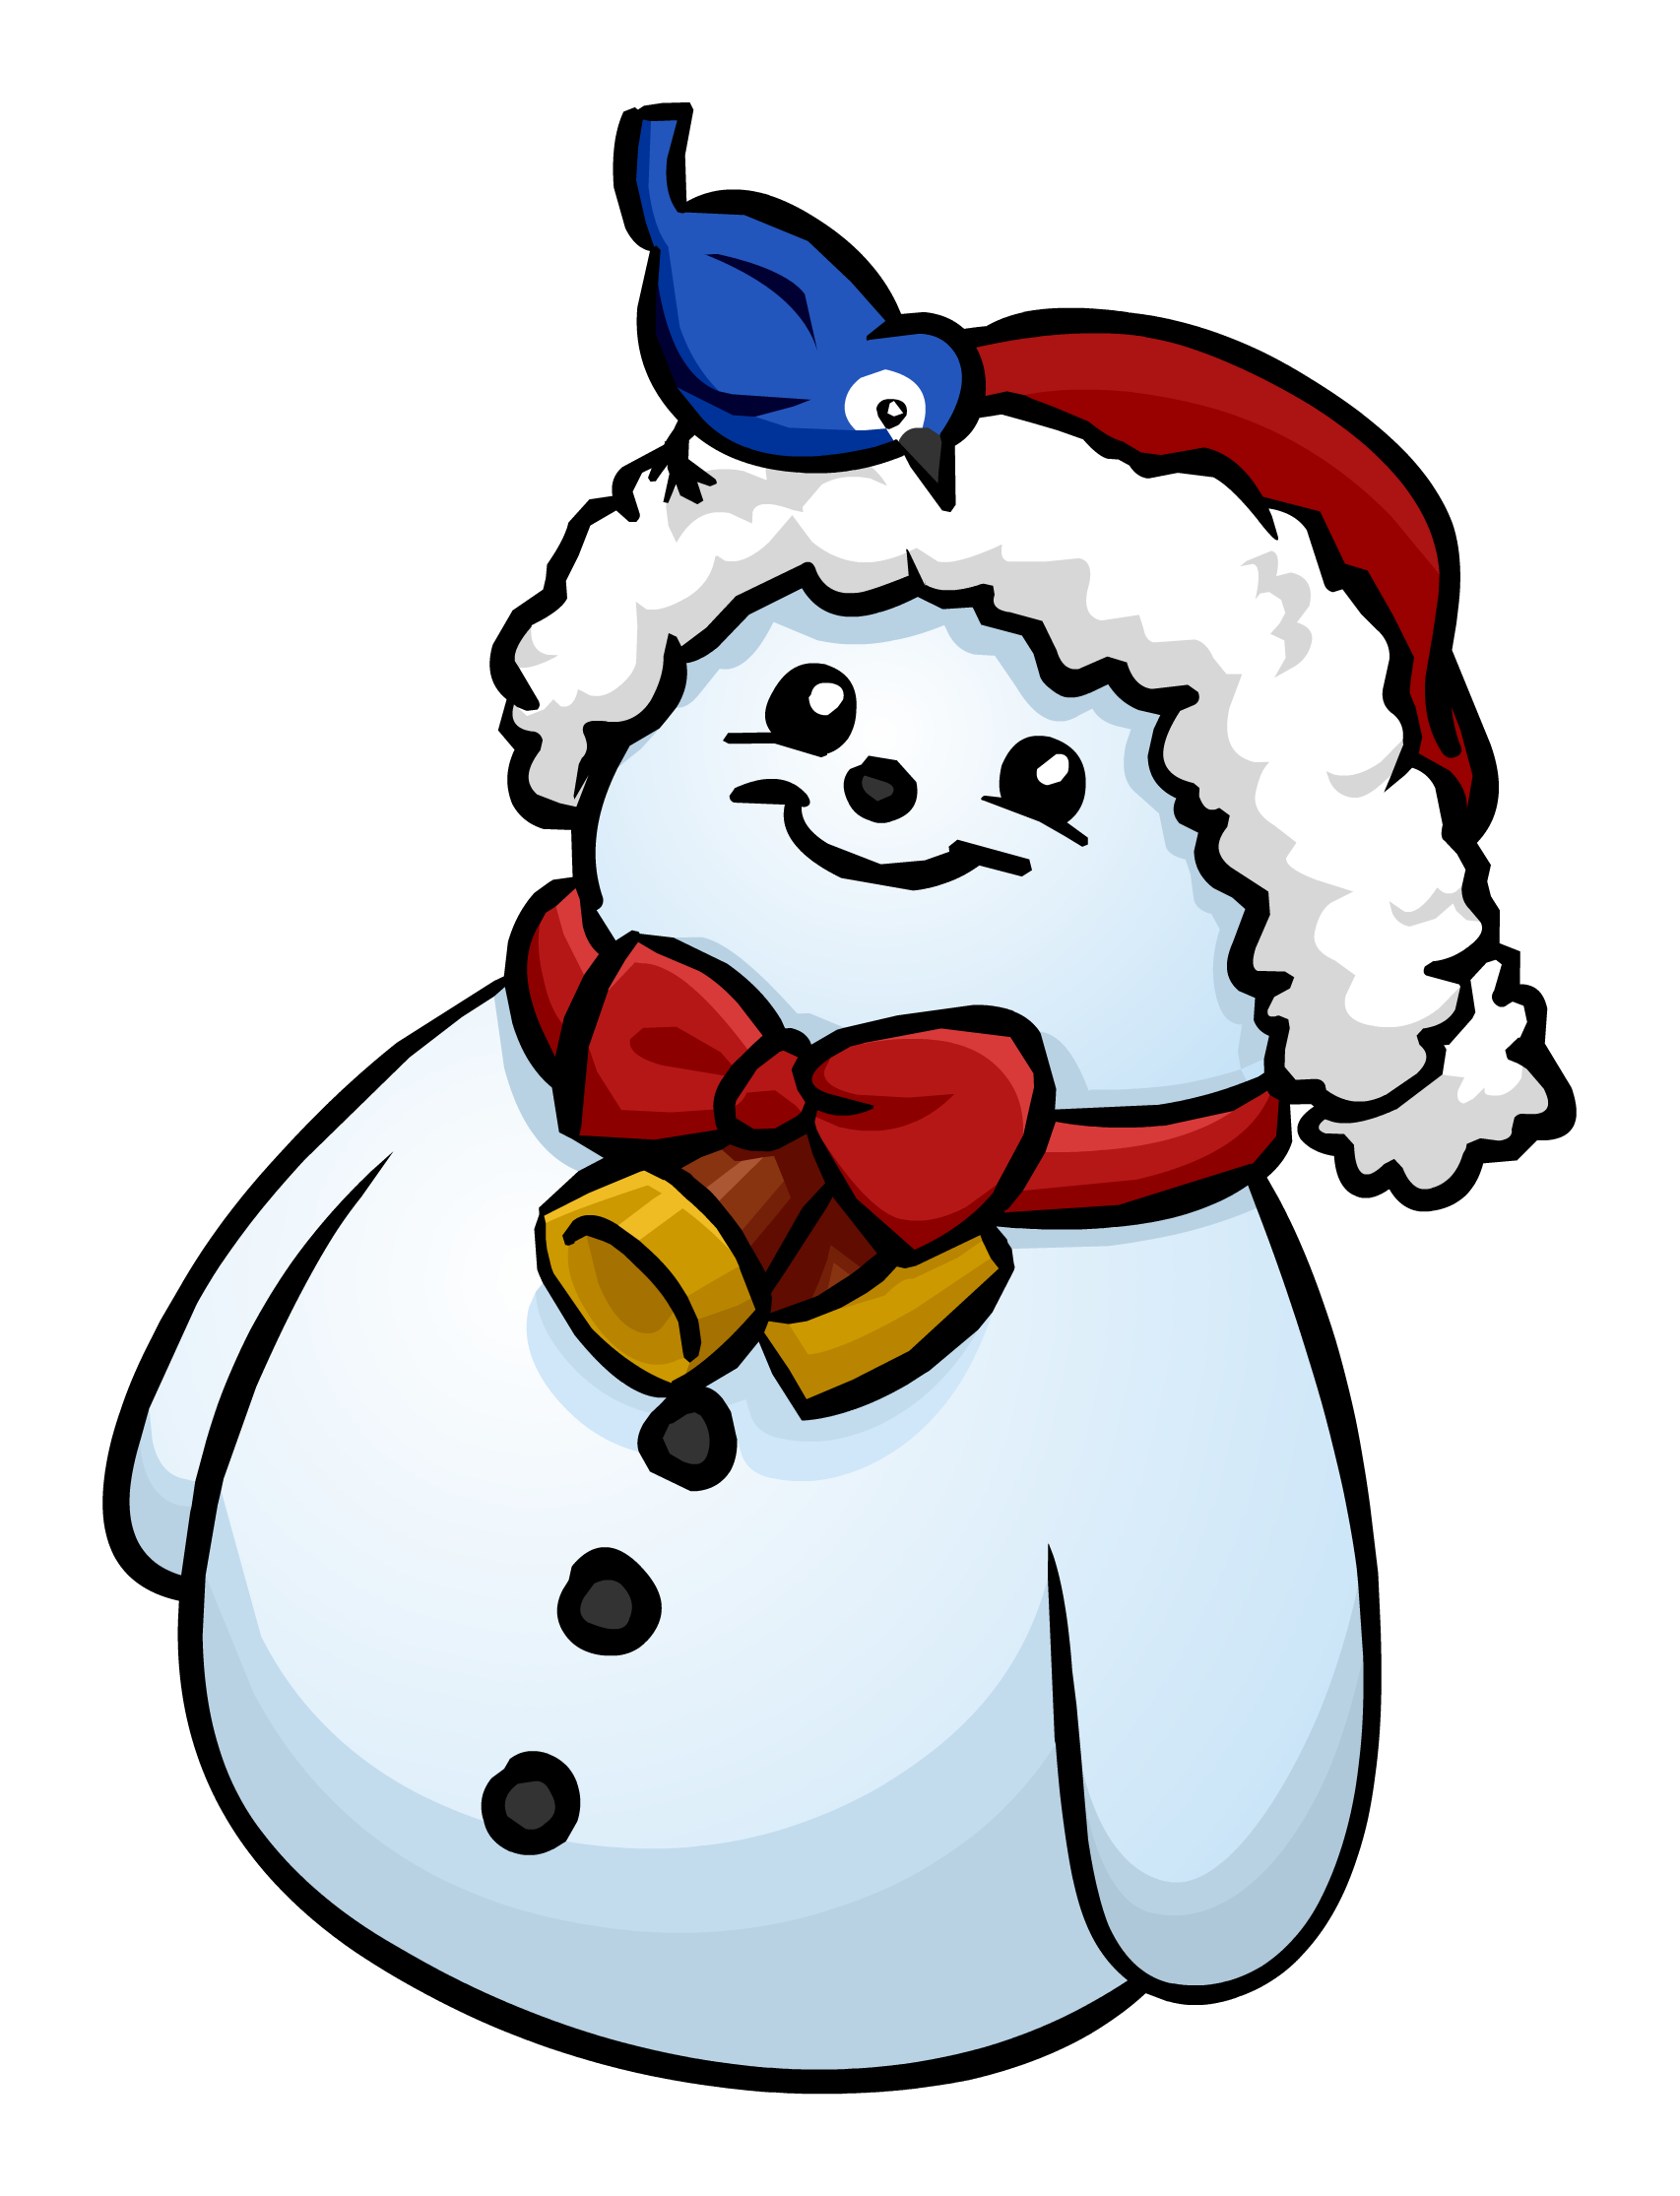 Snowman reading a book and free clipart jpg library download Snowman Pin & Holiday Party 2009 | Club Penguin Wiki | FANDOM ... jpg library download